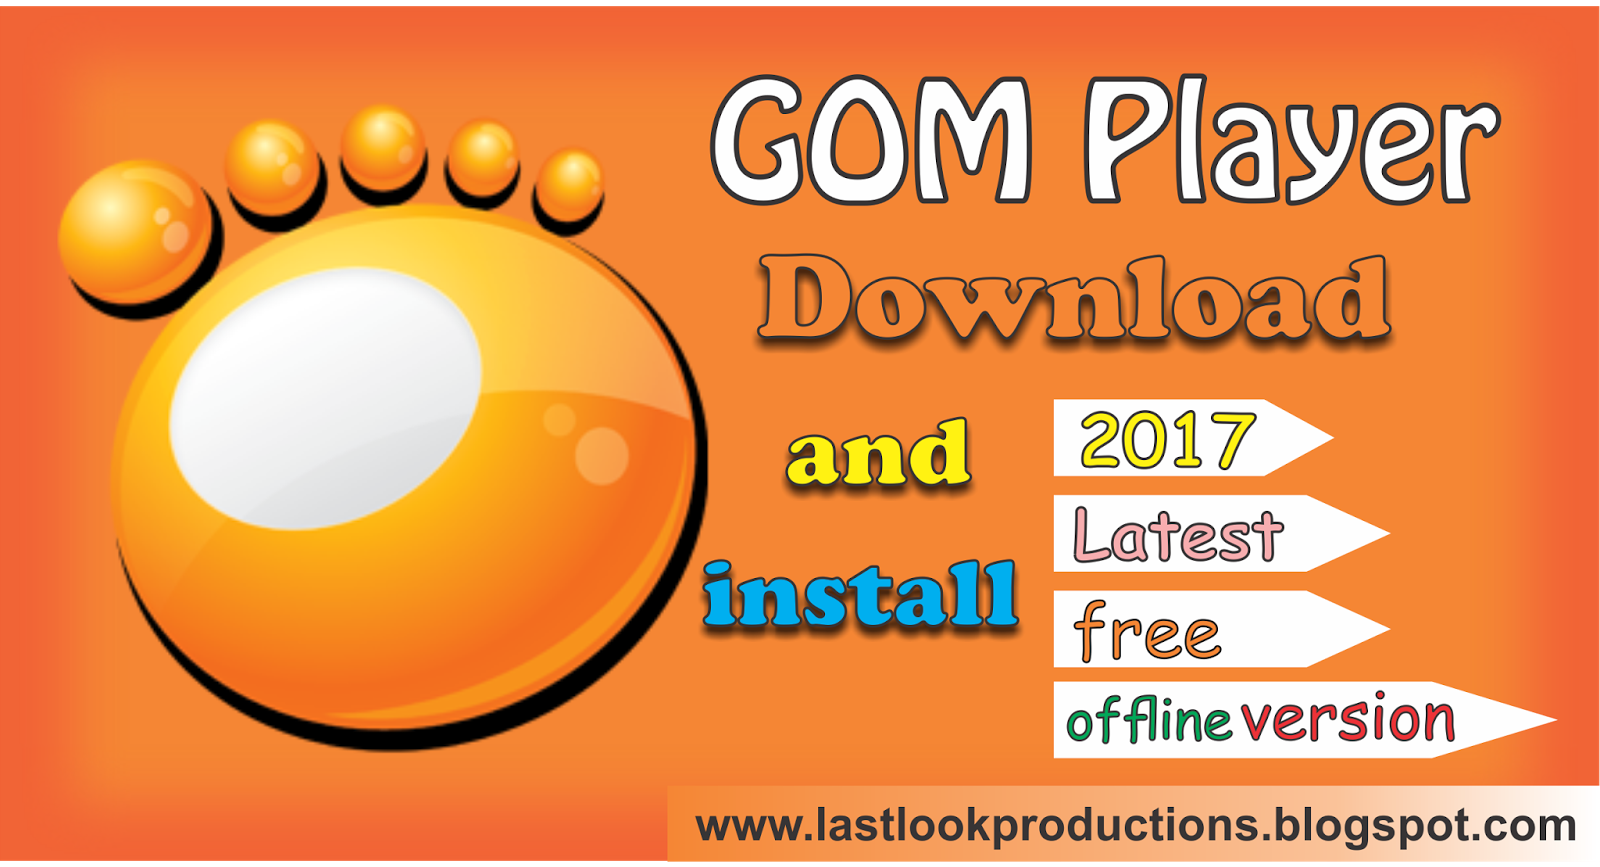 Free Download GOM Player latest version 2017 offline in